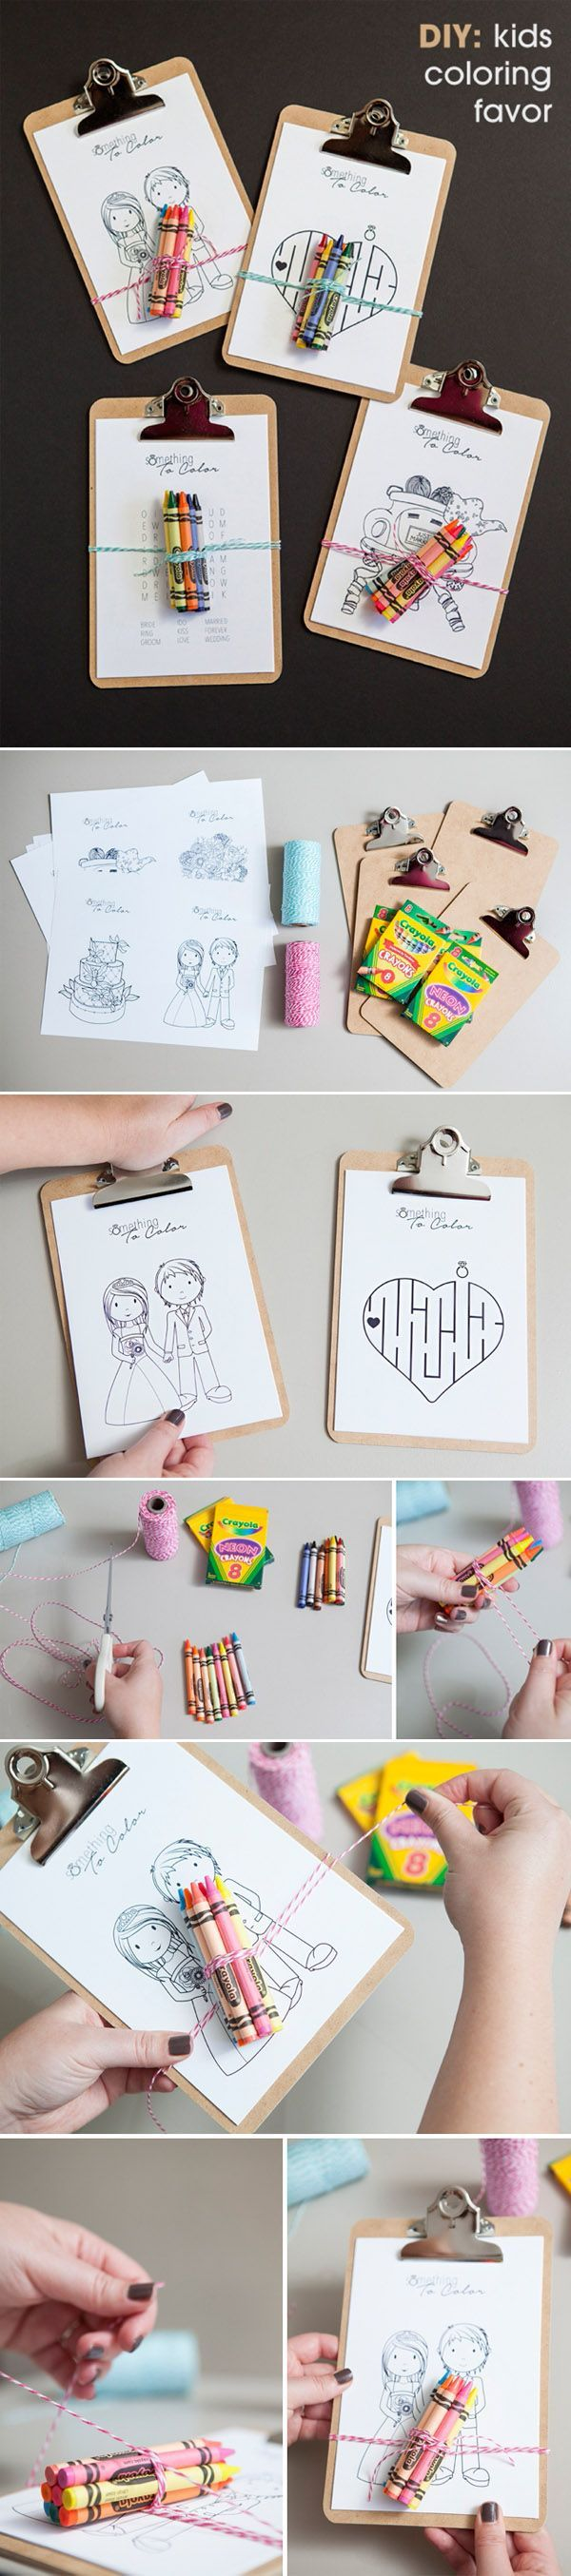 Top diy wedding favors your guests will love kids coloring